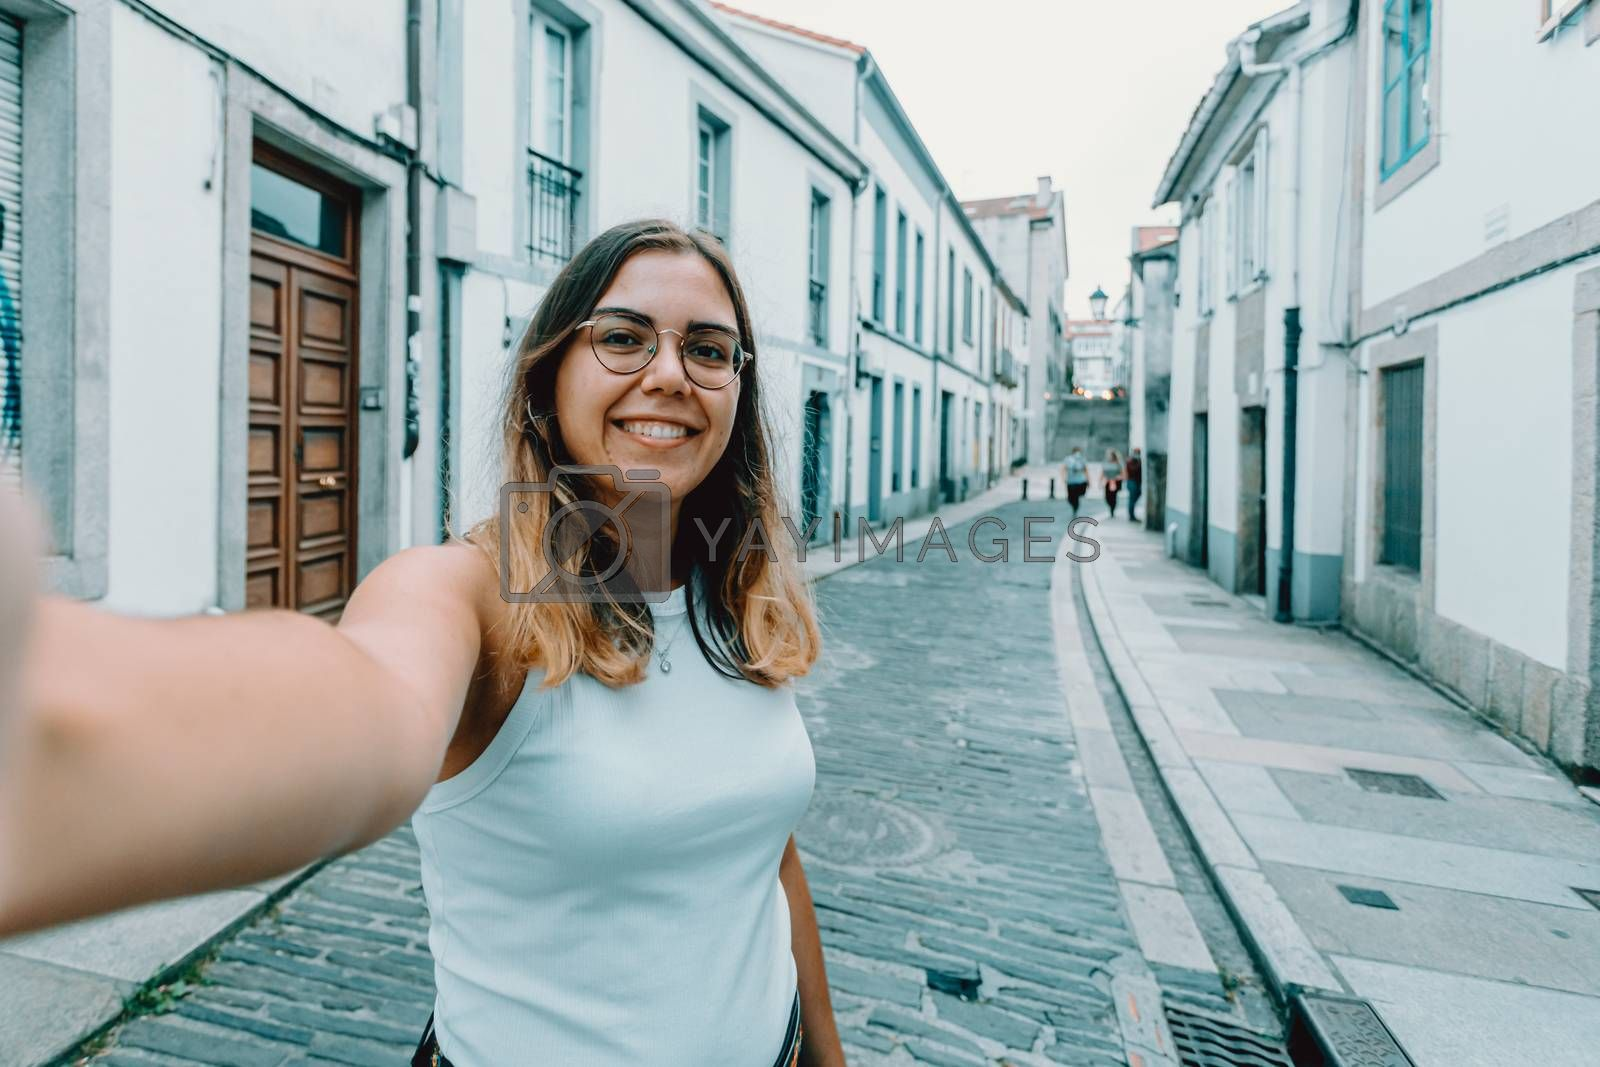 A young woman with glasses taking a selfie on a old spanish street